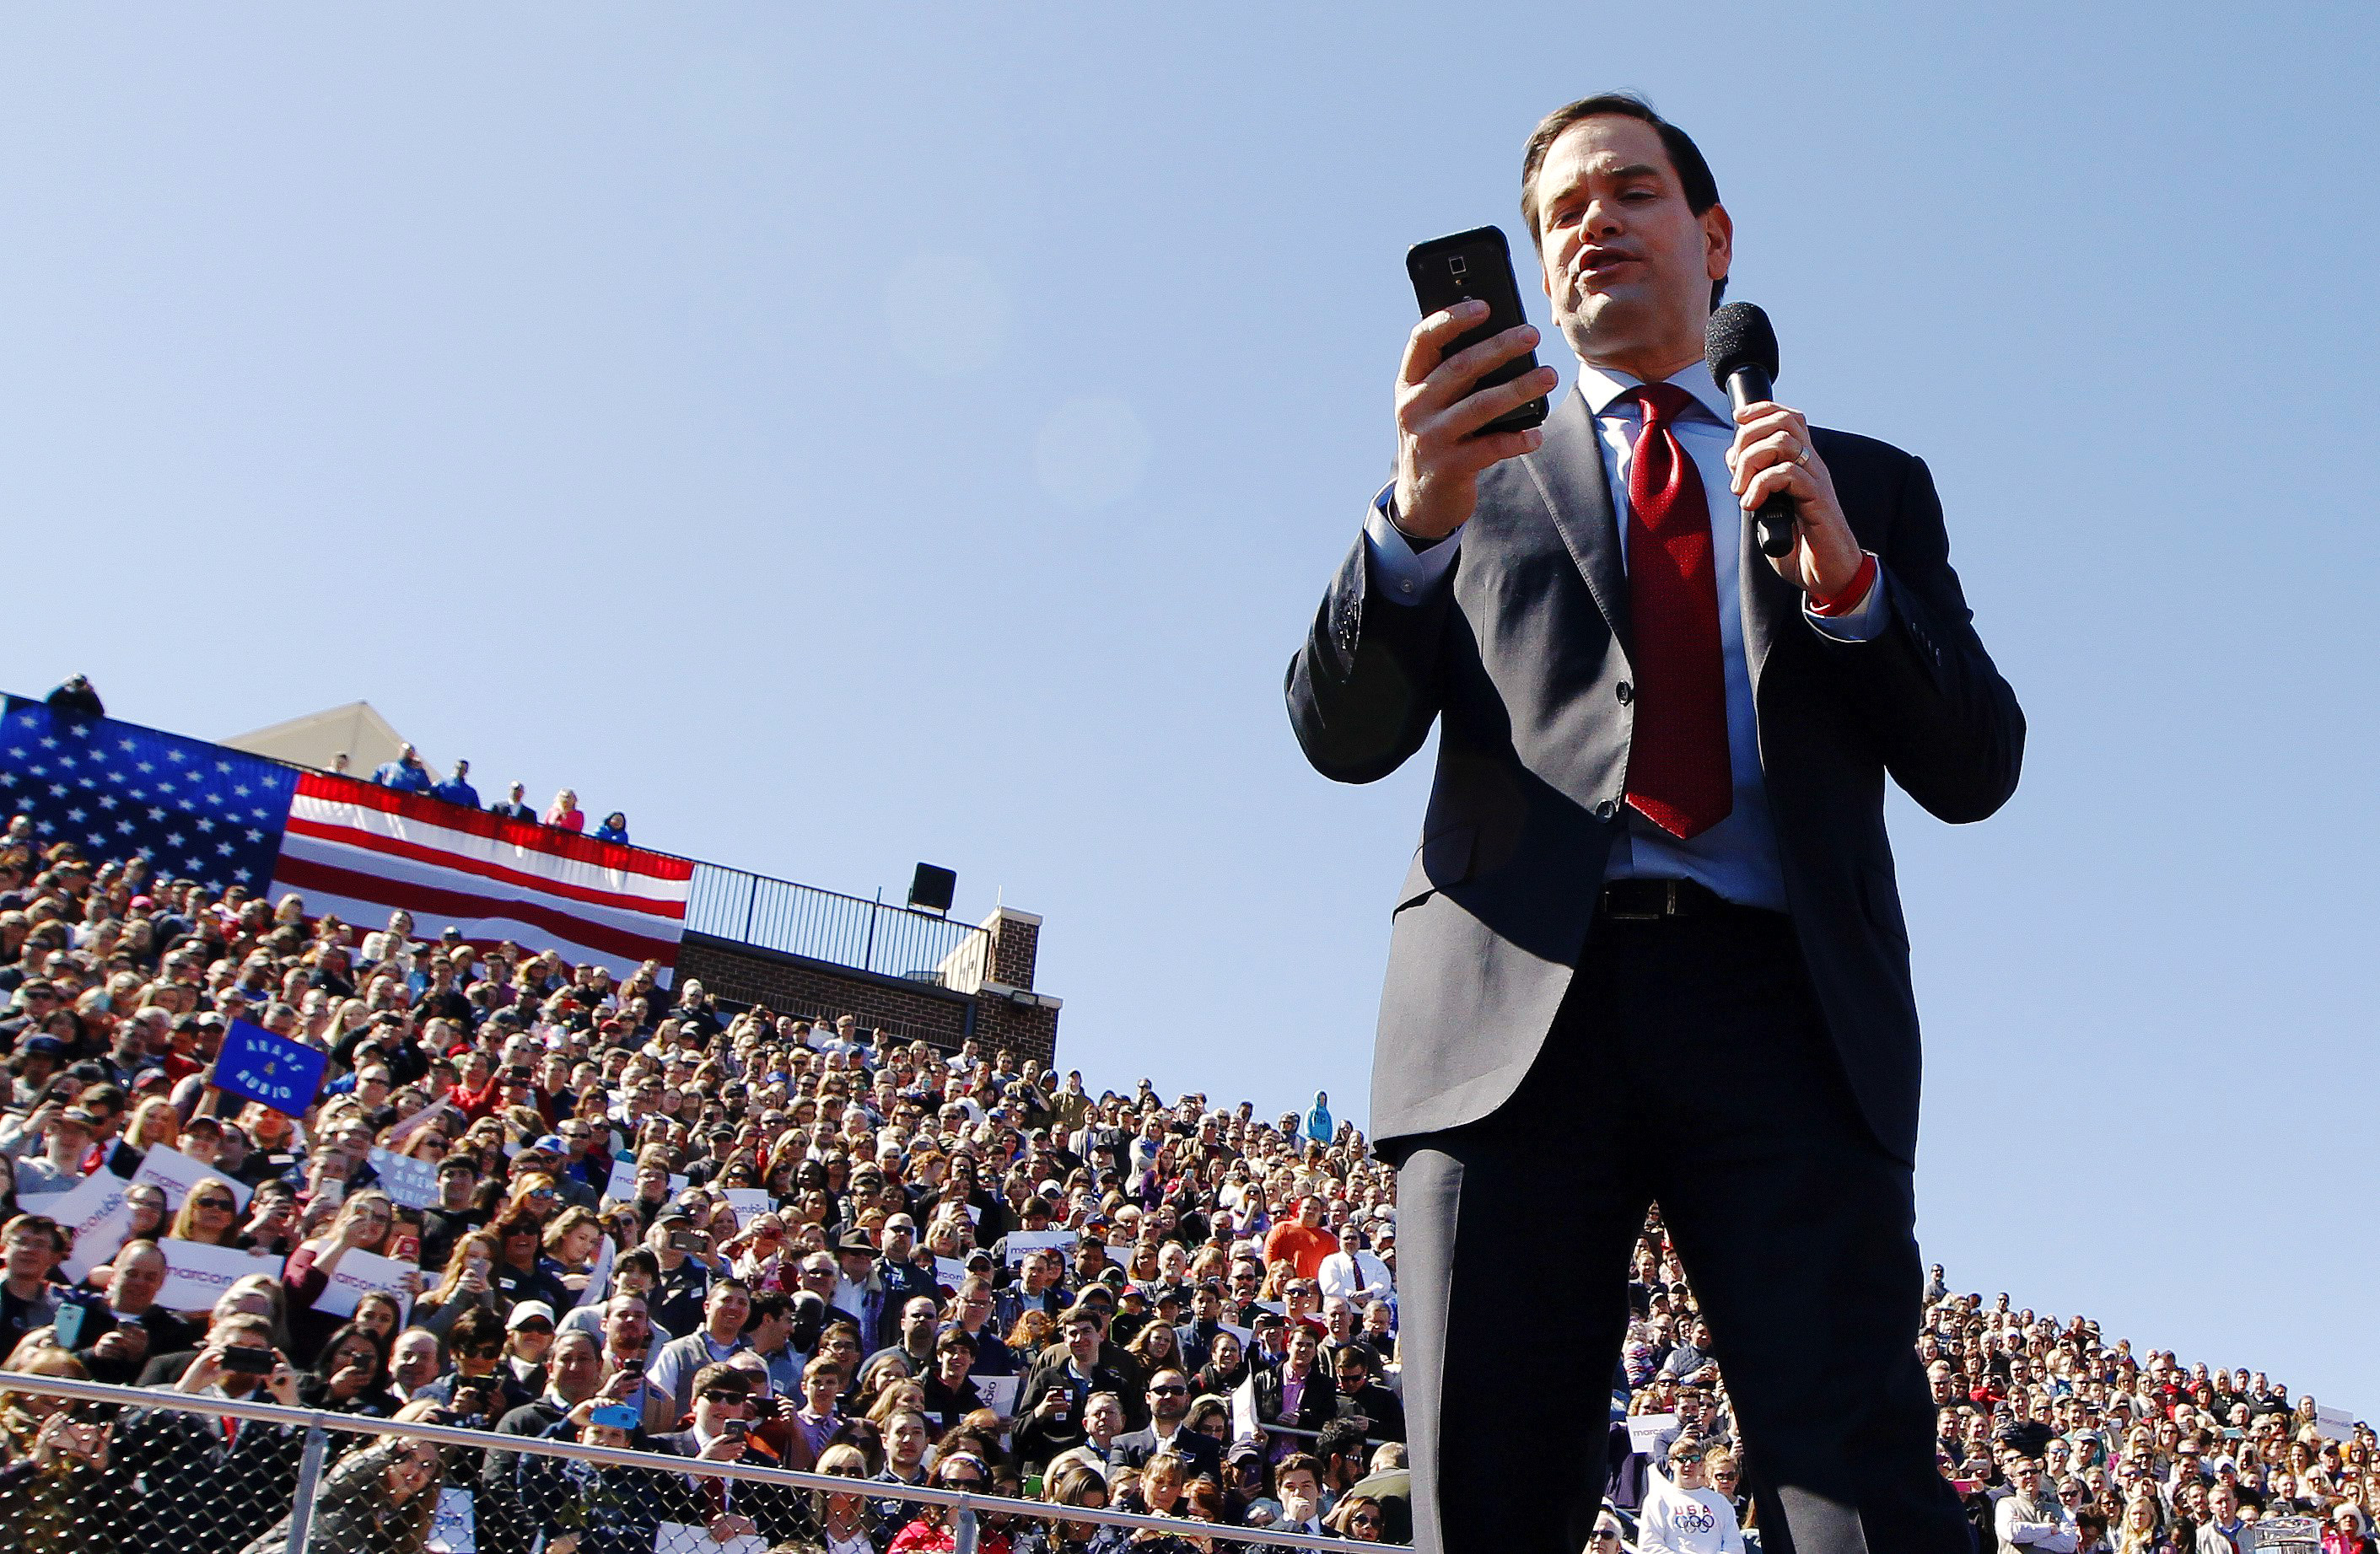 Republican presidential candidate, Florida Sen. Marco Rubio reads tweets from Donald Trump during a rally at Mount Paran Christian school in Kennesaw, Ga. on Feb. 27.